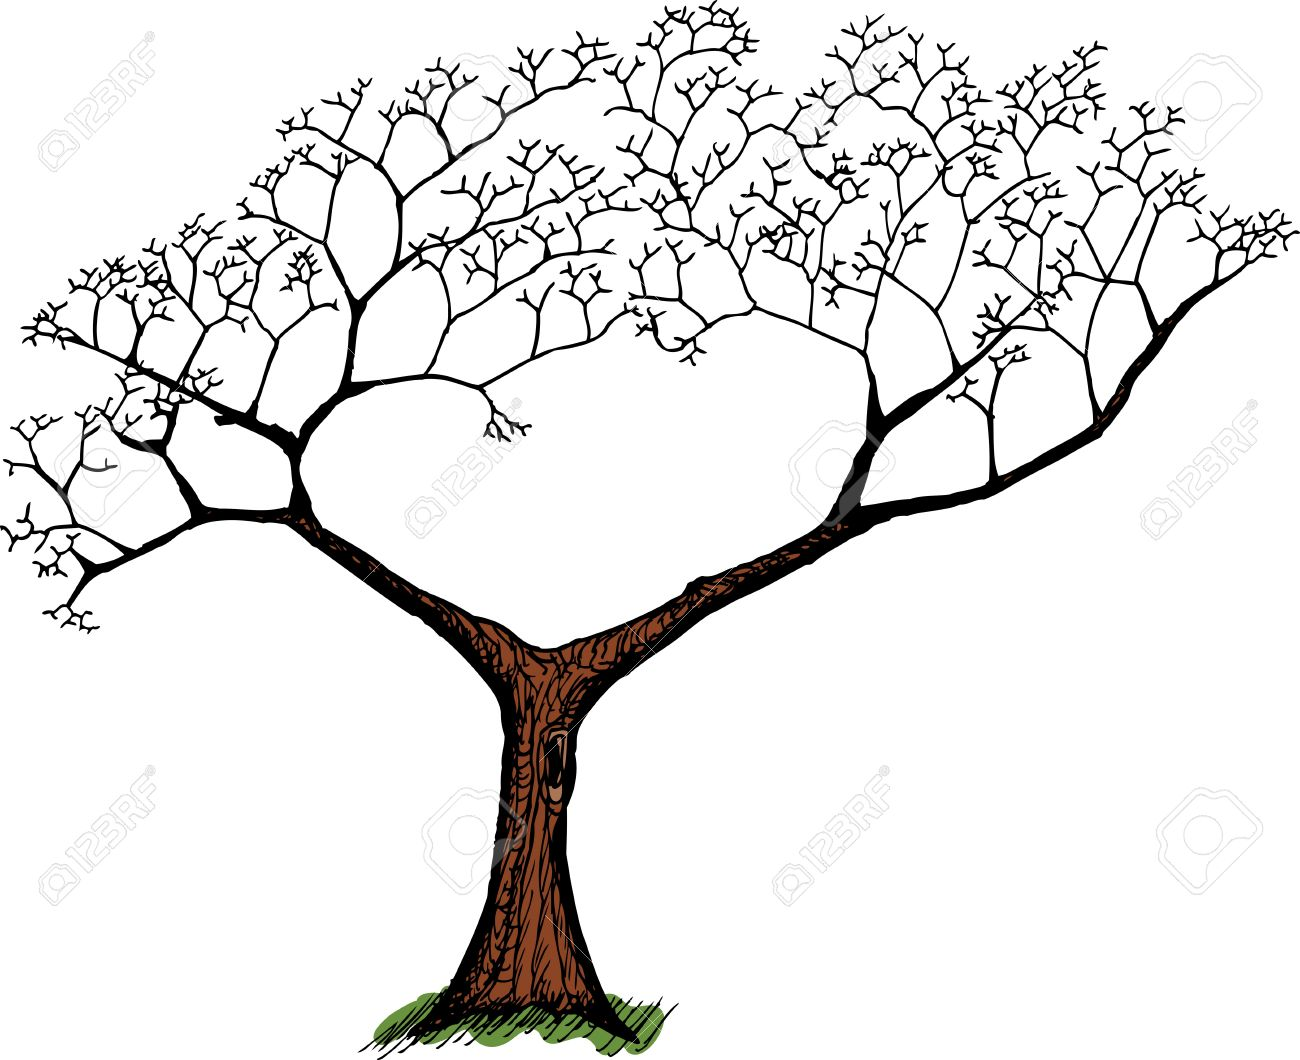 Cartoon Of Old Tree With Green Grass Over White Royalty Free.